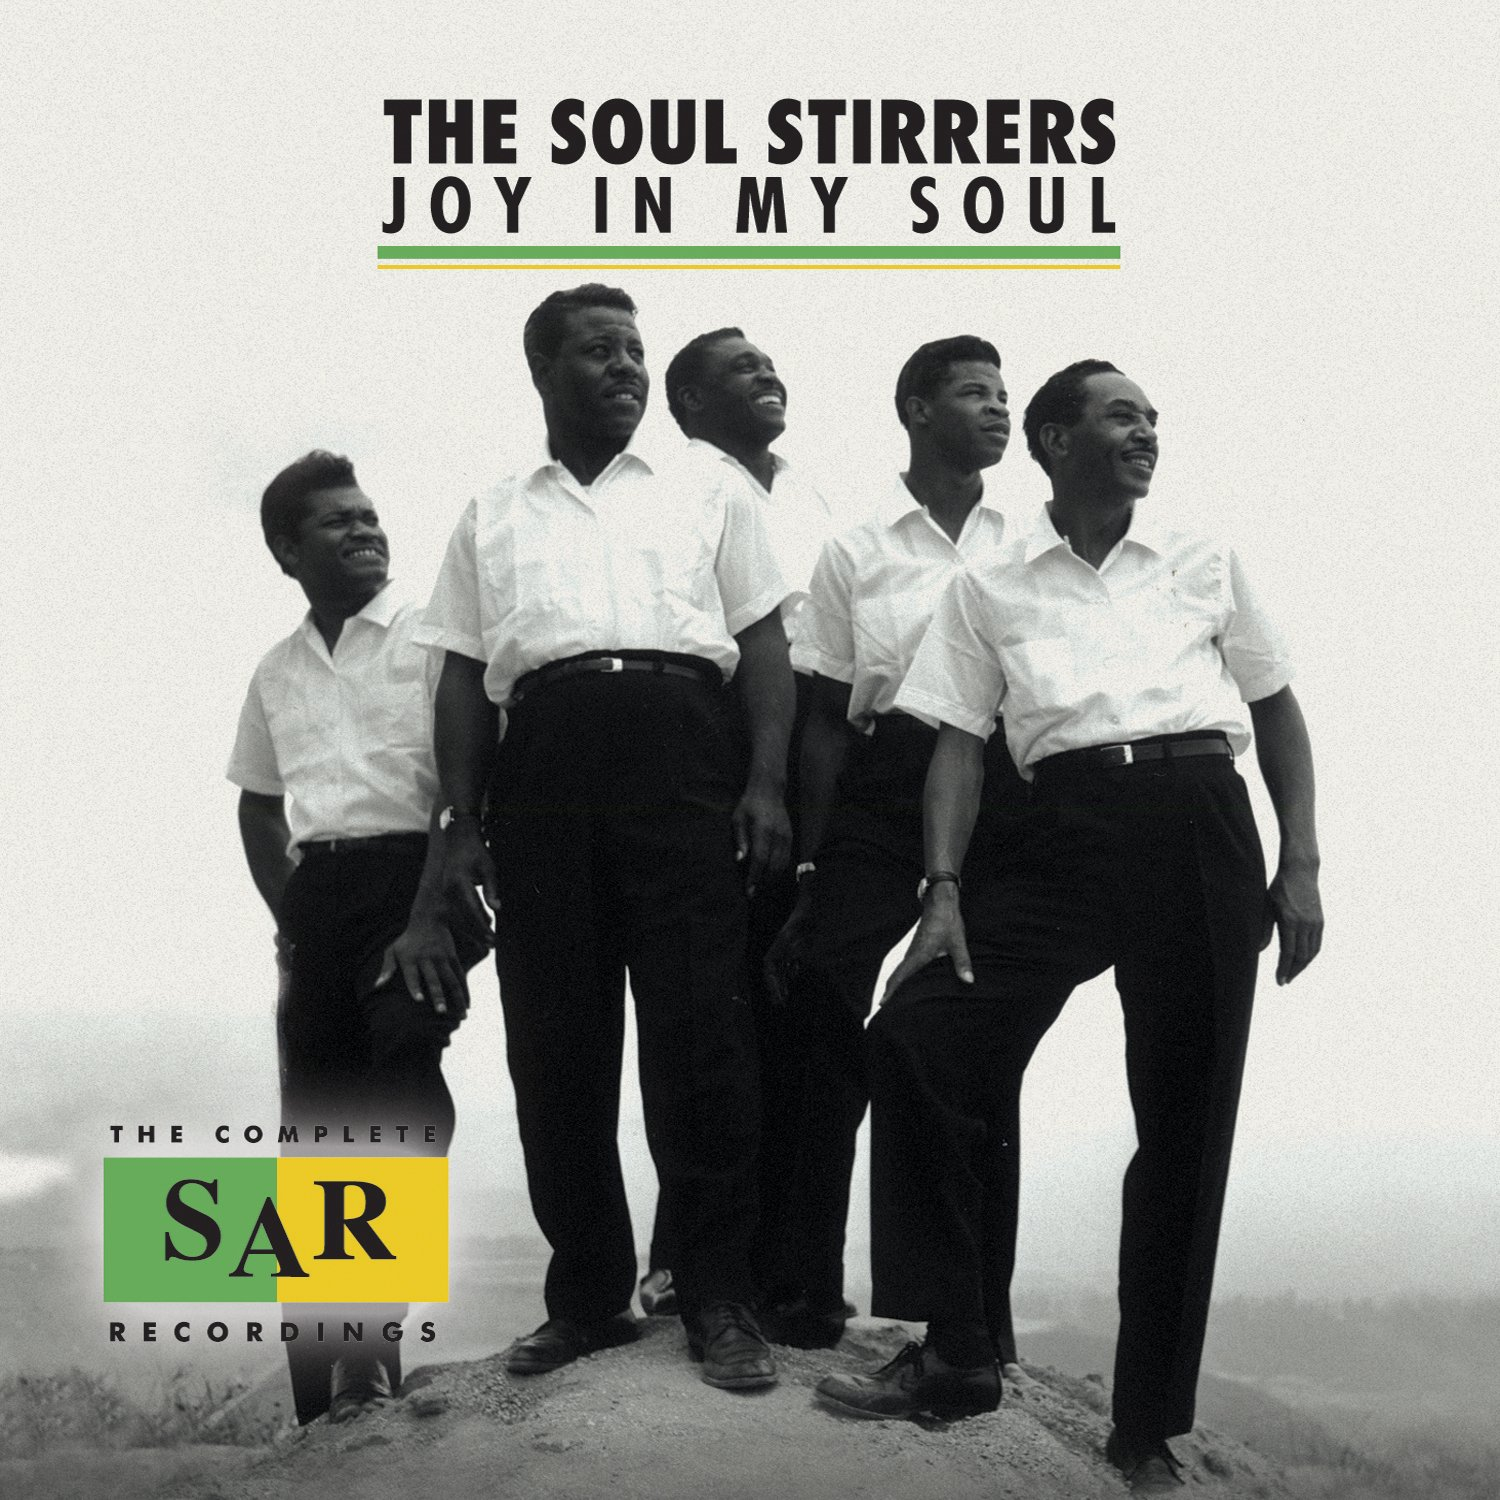 Joy In My Soul: Daily bargain sale Recordings Complete SAR Louisville-Jefferson County Mall The